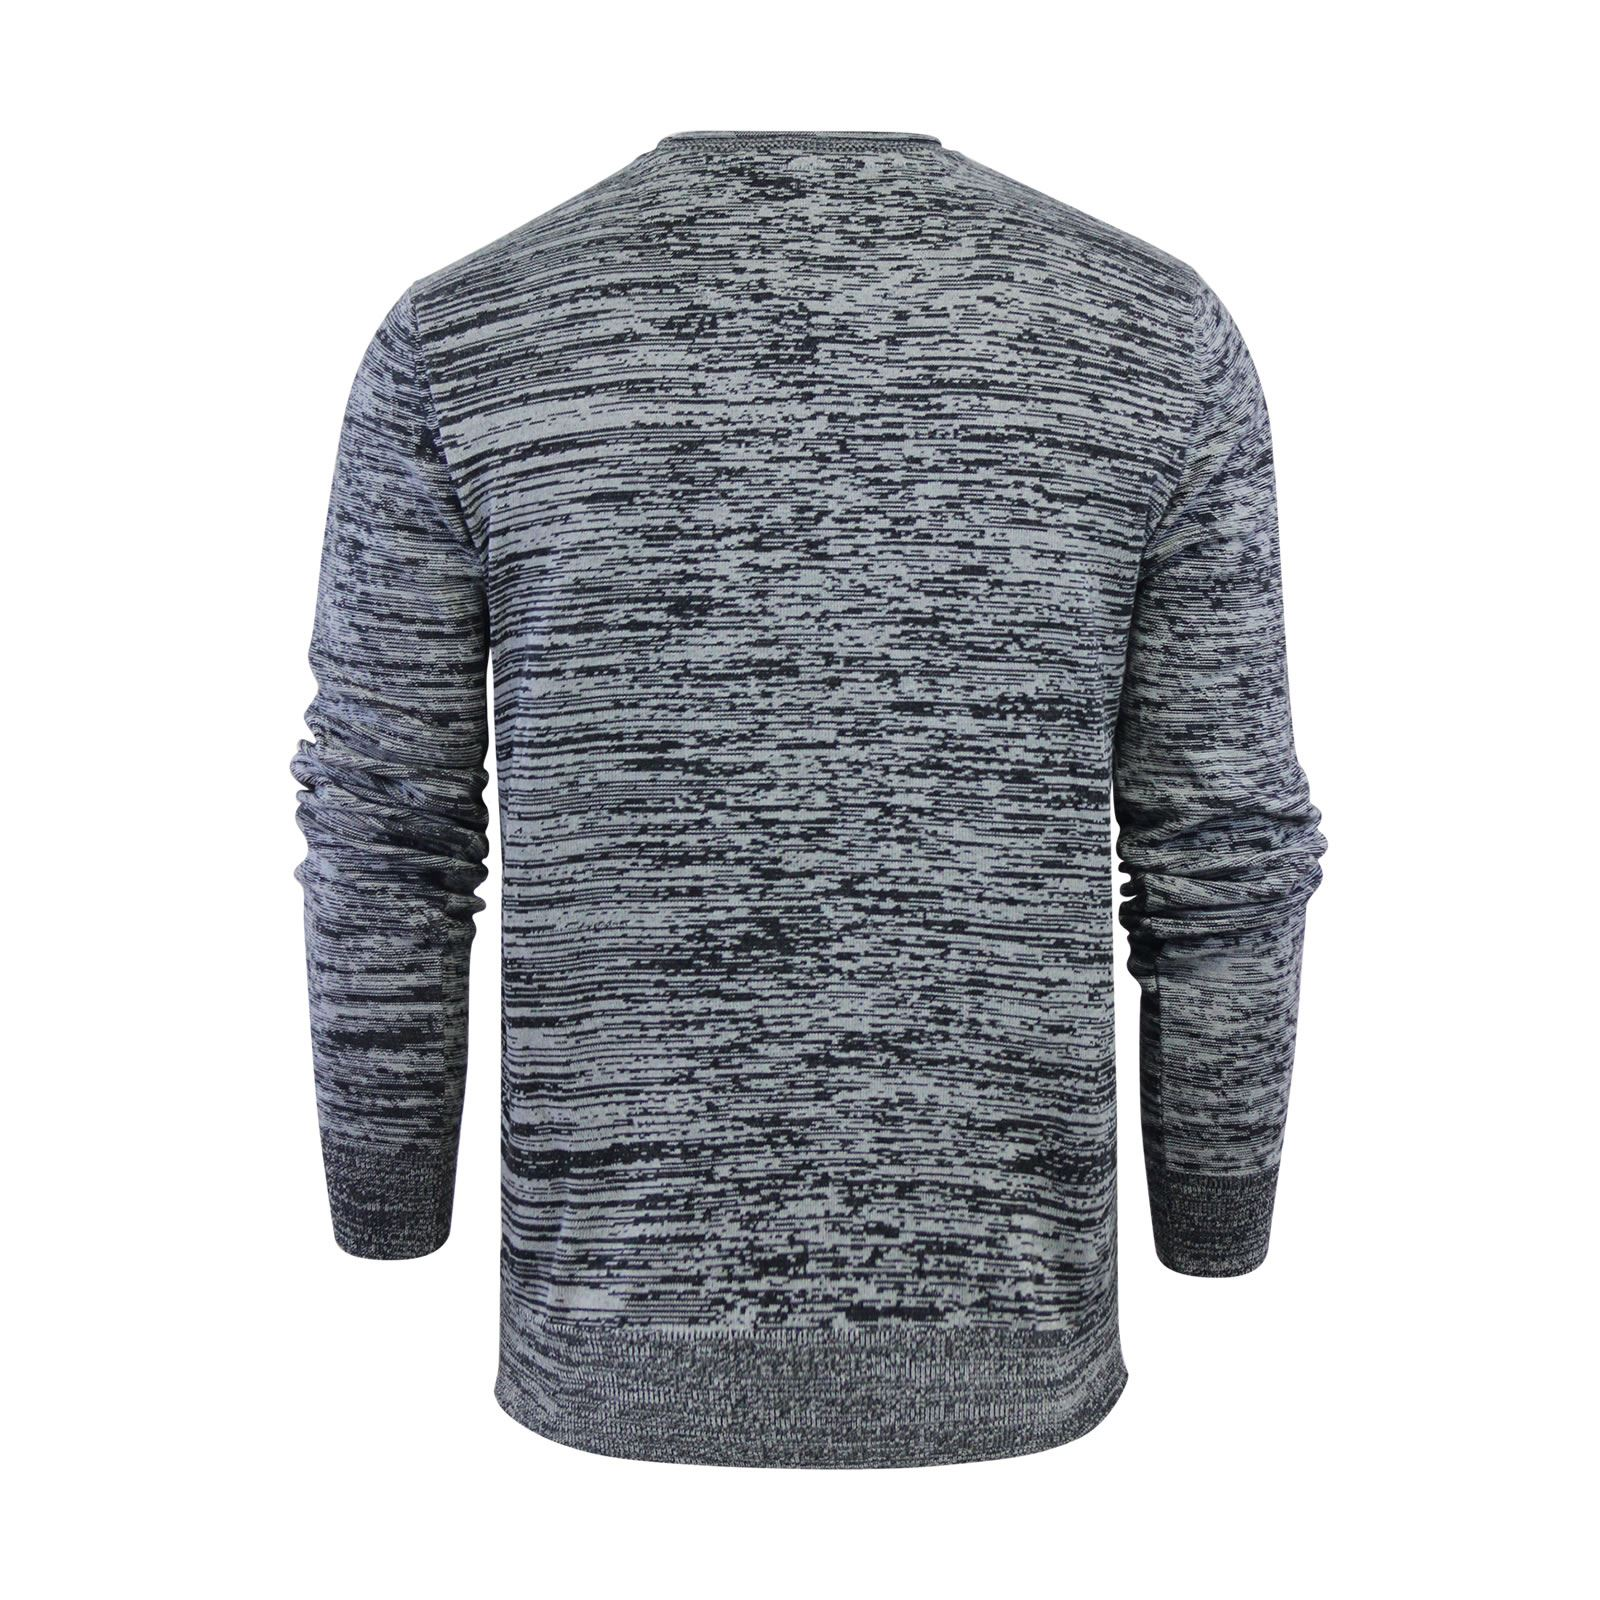 Mens-Jumper-Brave-Soul-Knitted-Sweater-In-Various-Styles thumbnail 13